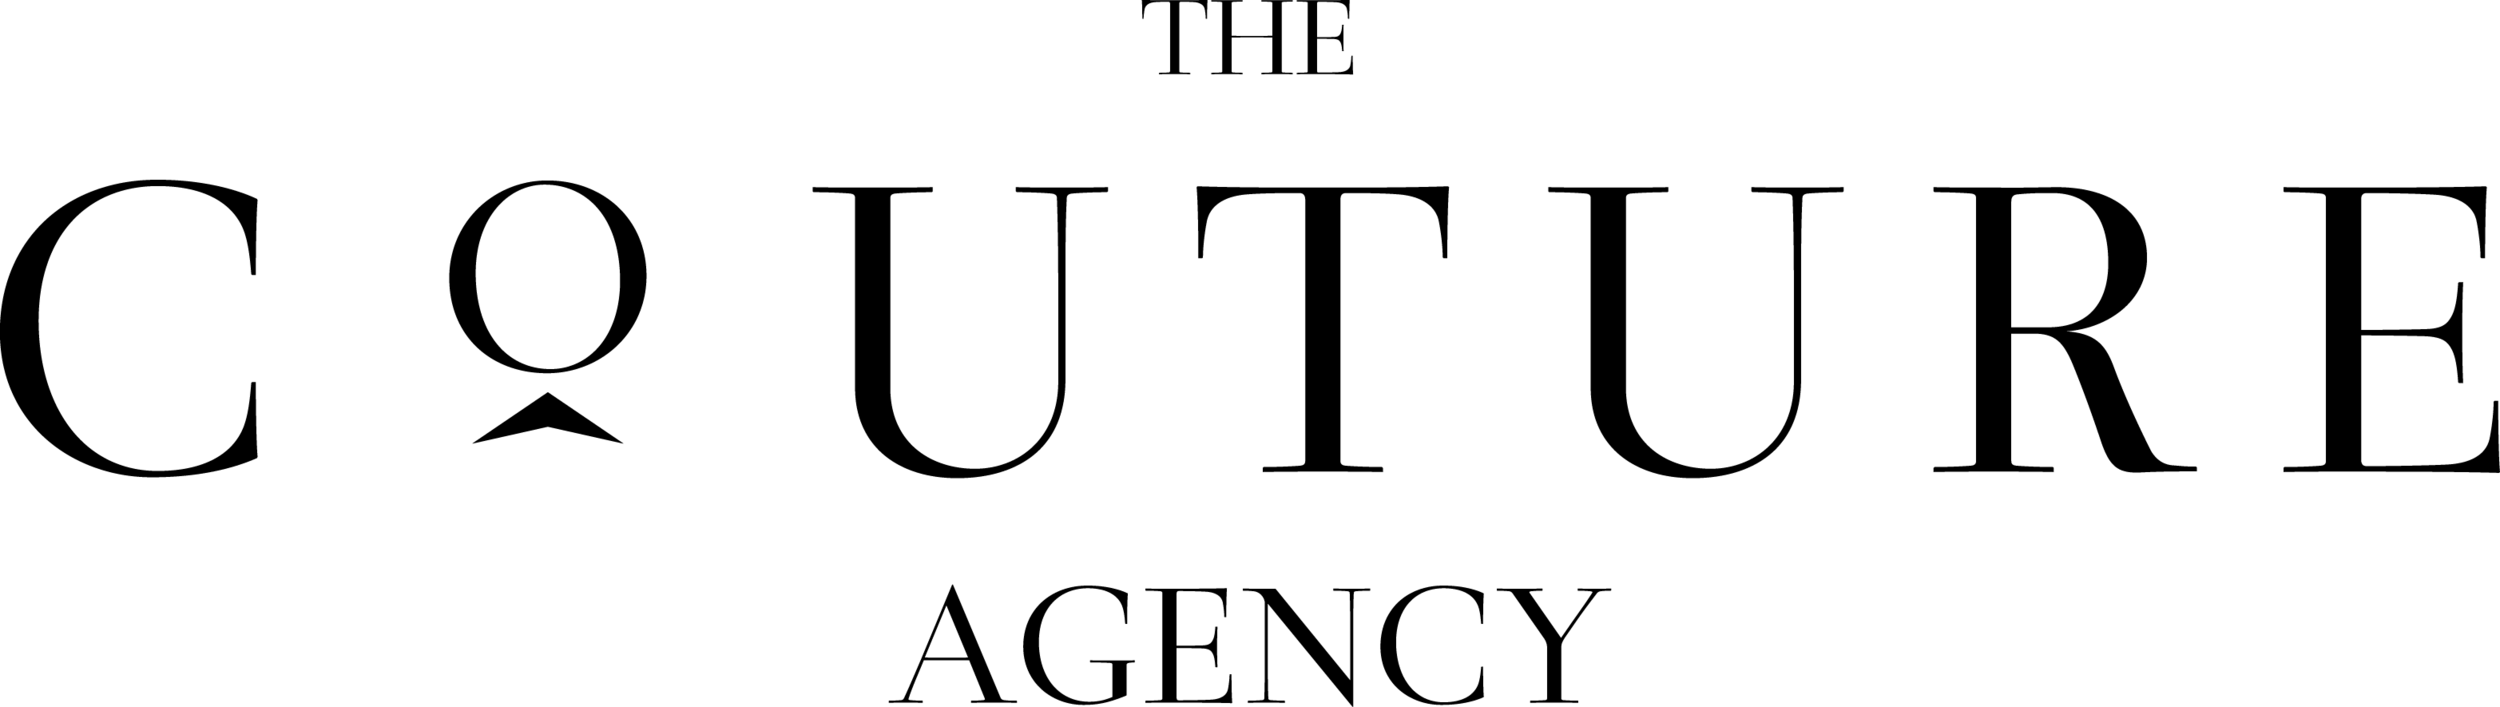 coutureAGENCYlogo.png